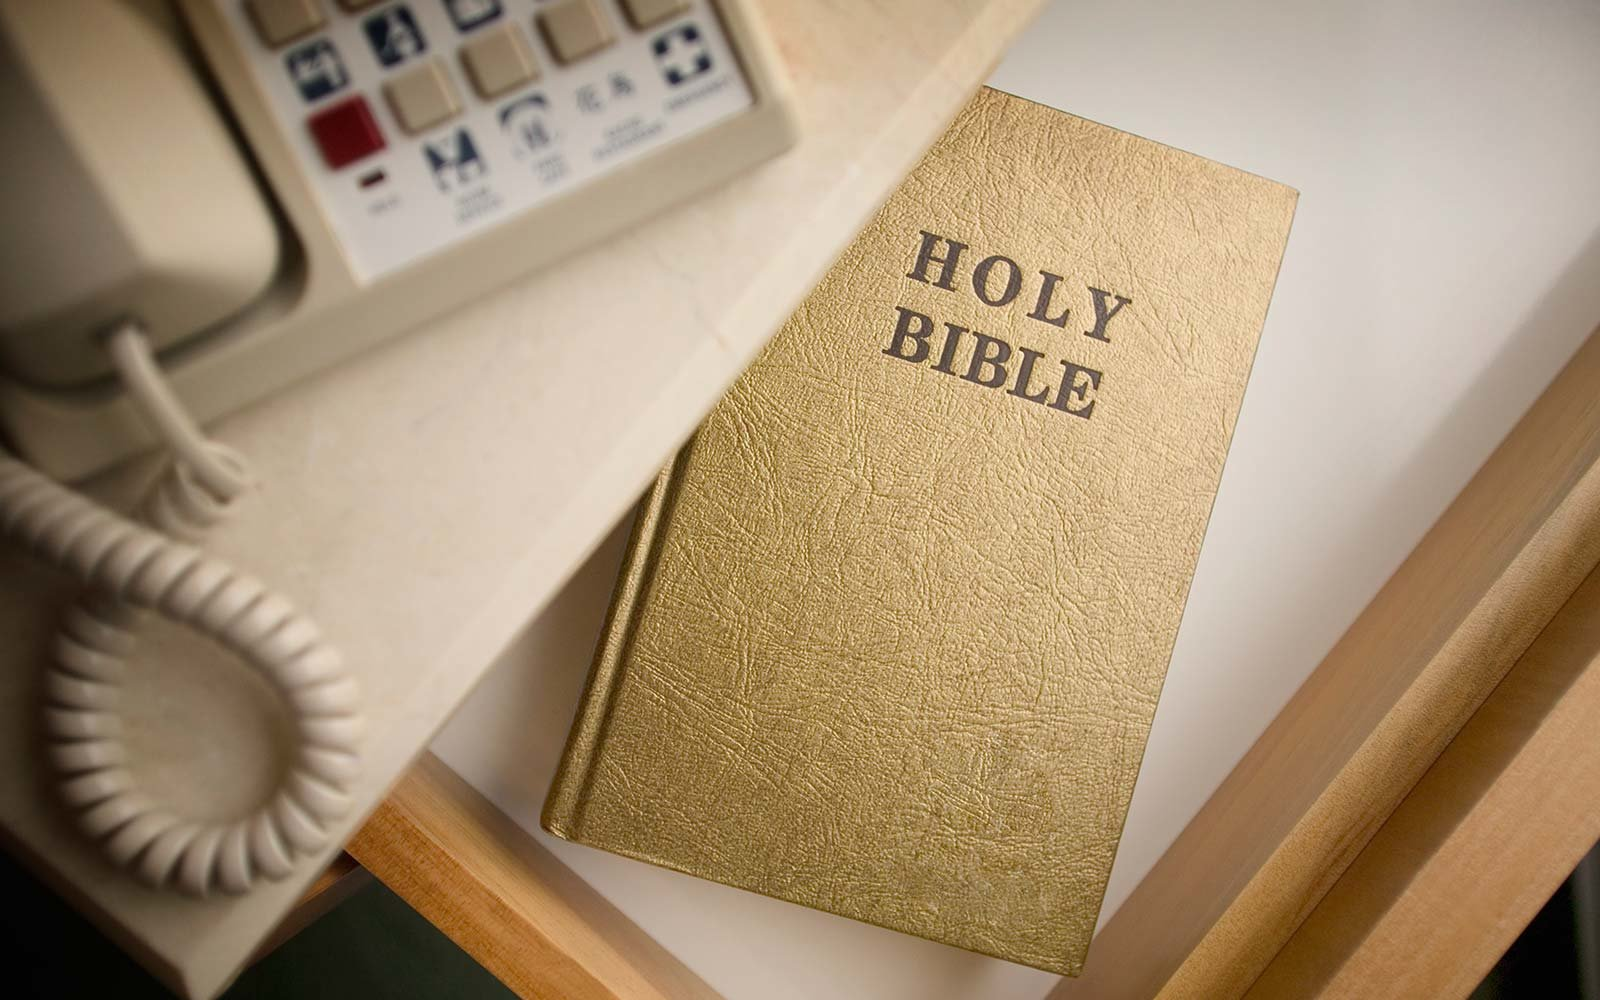 hotel bed holy bible